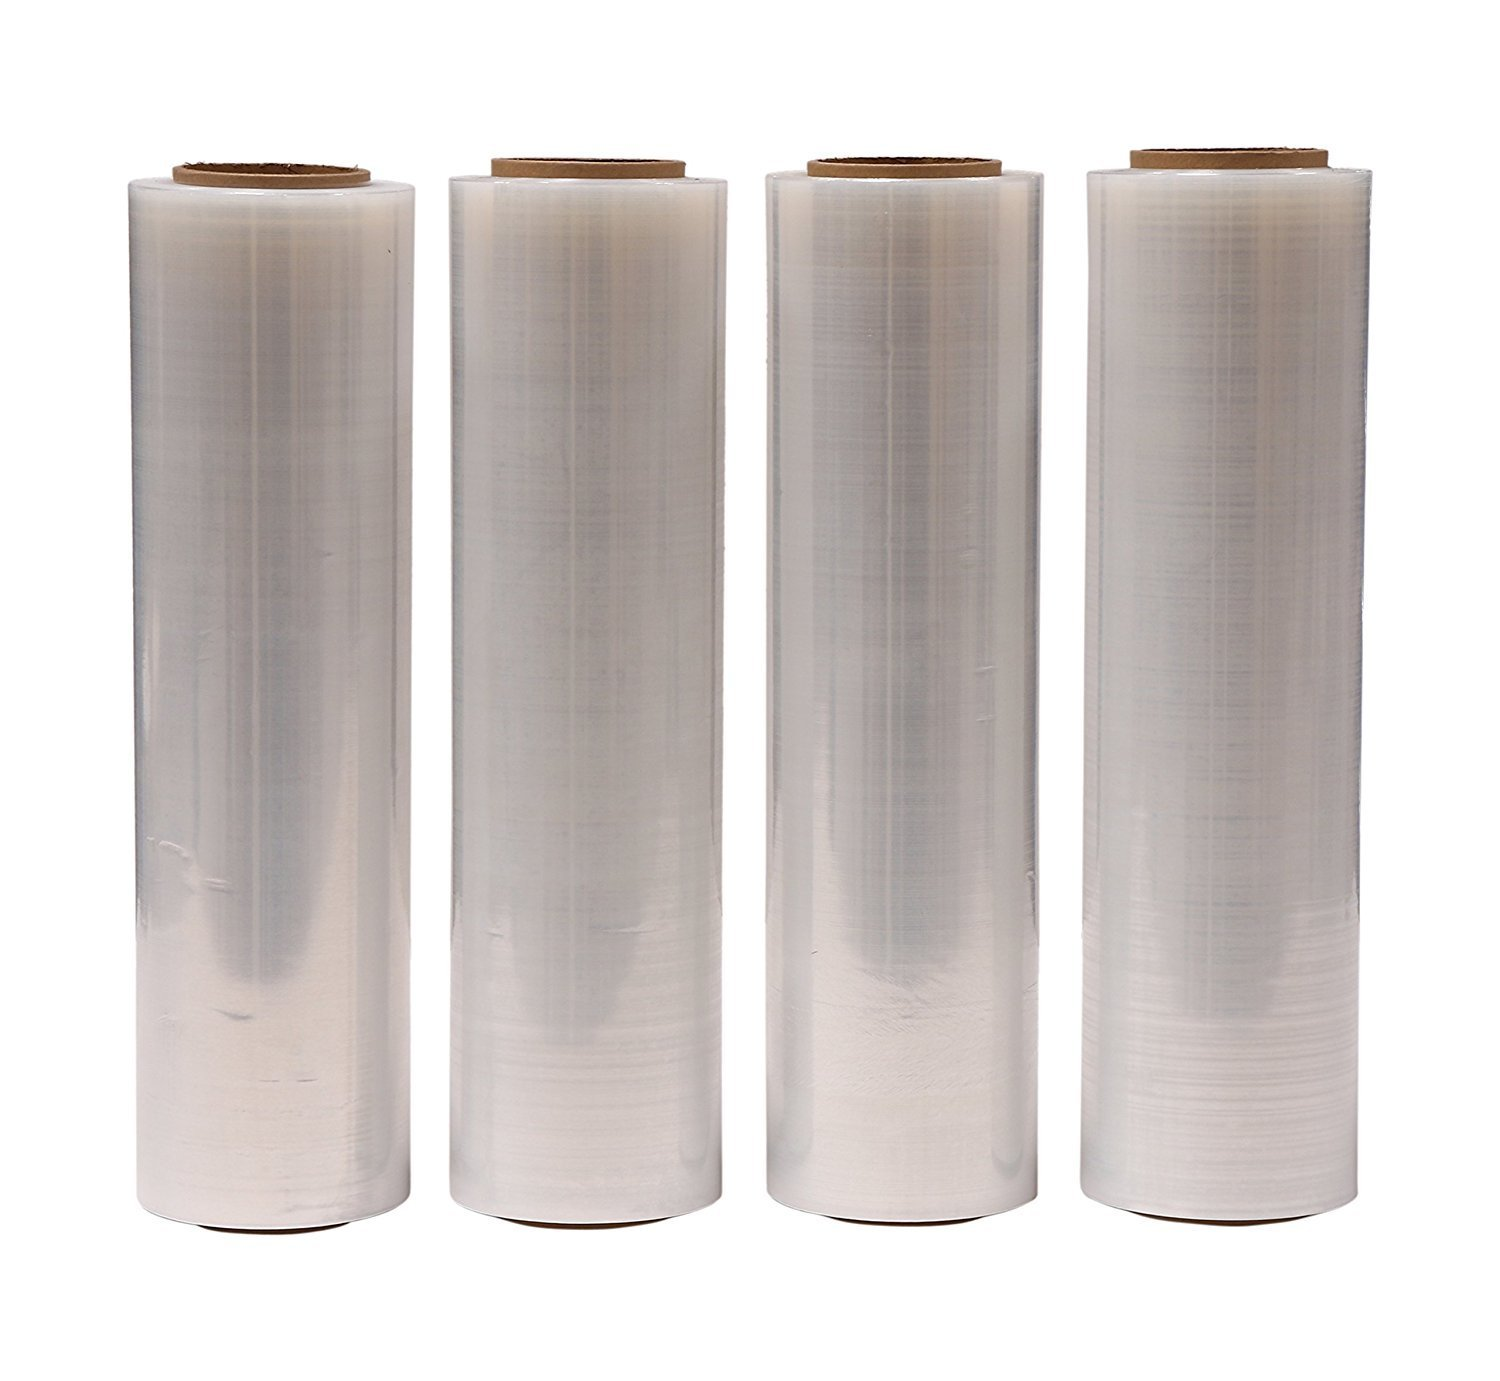 """AMERIQUE Shrink Wrap 4 Pack (4000FTX18"""", 25.2 LBS Total): Stretch Film Plastic Wrap - Industrial Strength Hand Stretch Wrap, 18""""x 1,000 FT Per Roll, 80 Gauge Shrink Film / Pallet Wrap – Clear"""